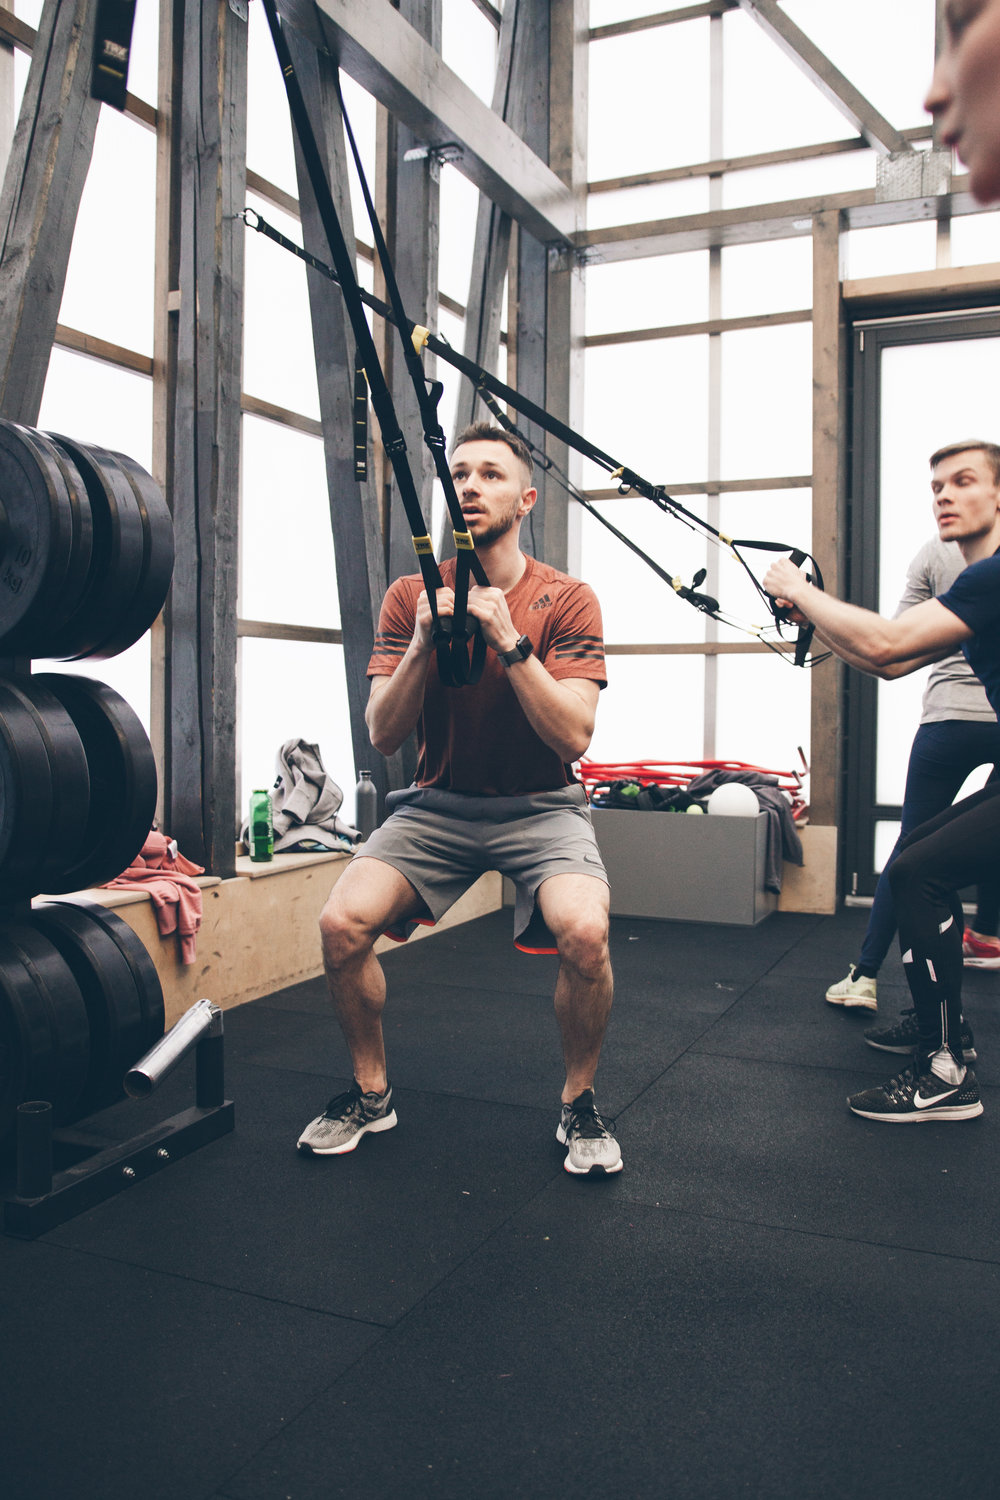 Guy squatting with TRX straps in hand and weights built up next to him at adidas runbase Berlin